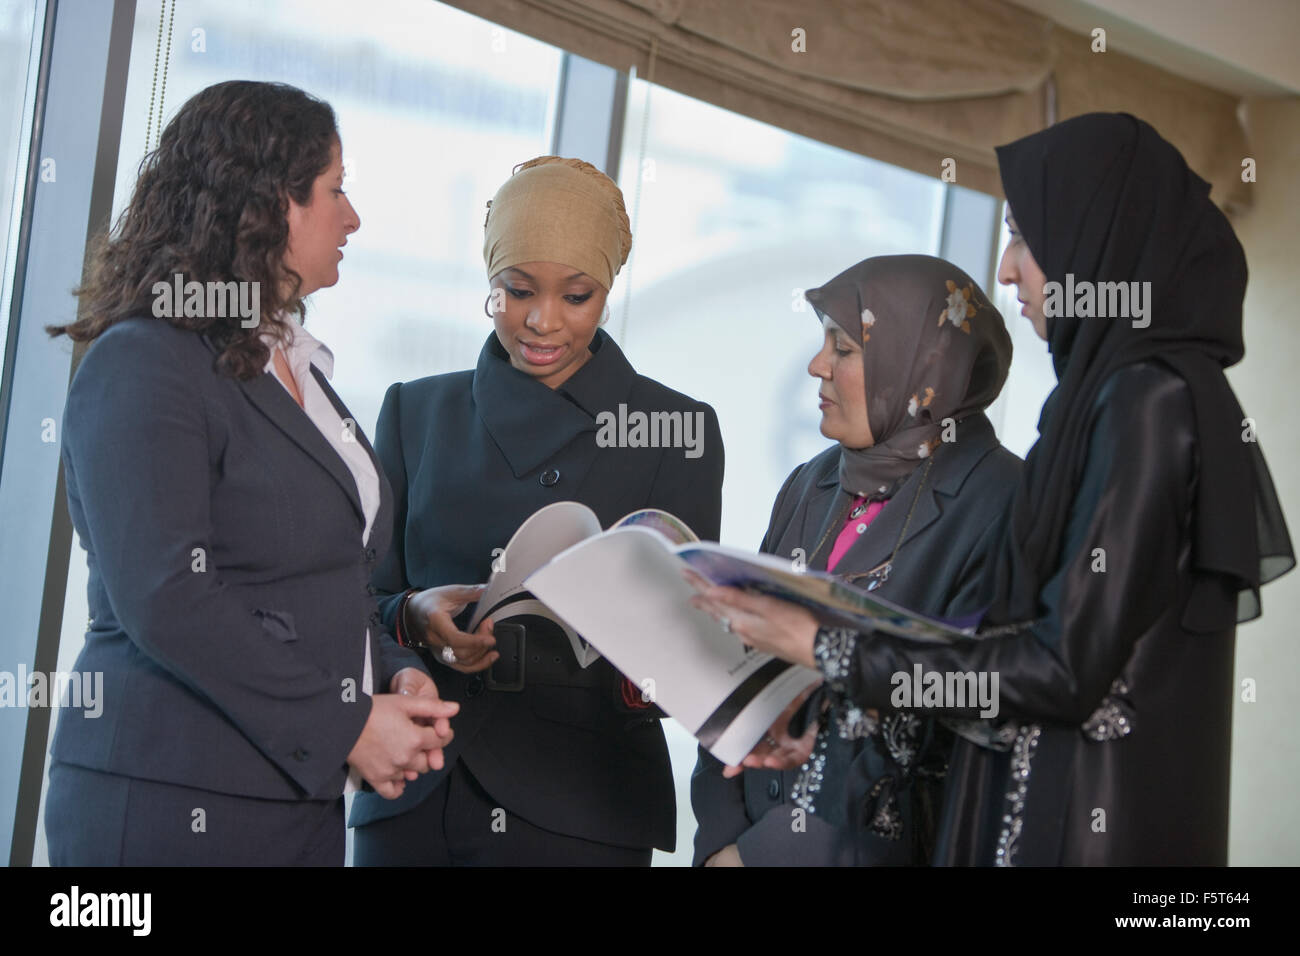 Muslim Women students discussing chatting in office environment - Stock Image